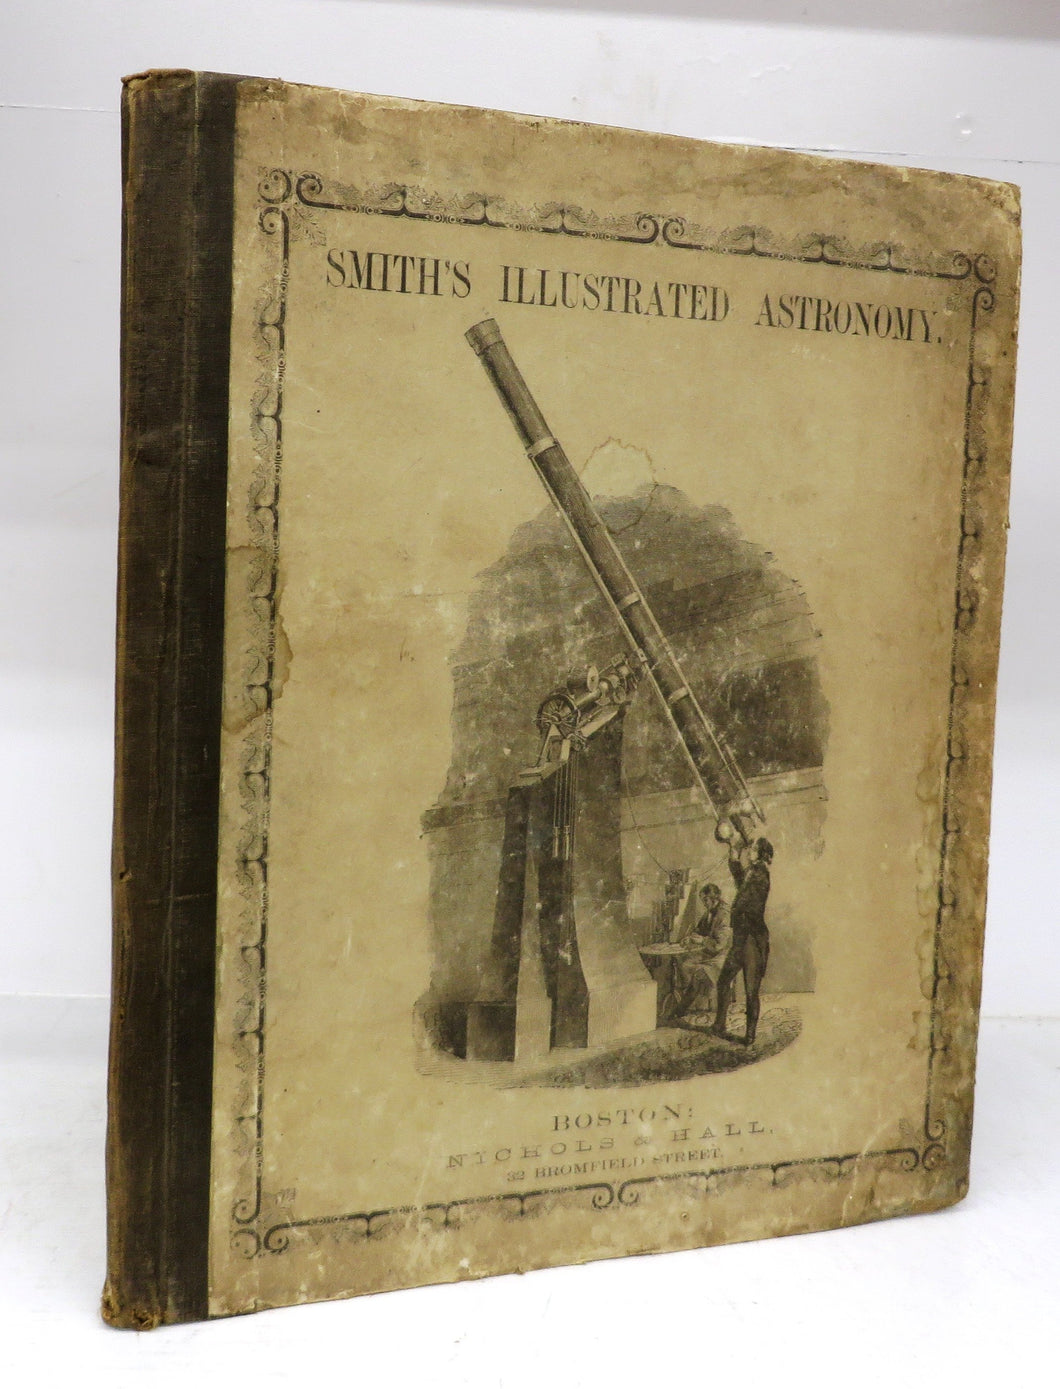 Smith's Illustrated Astronomy, Designed for the use of the Public or Common Schools in the United States